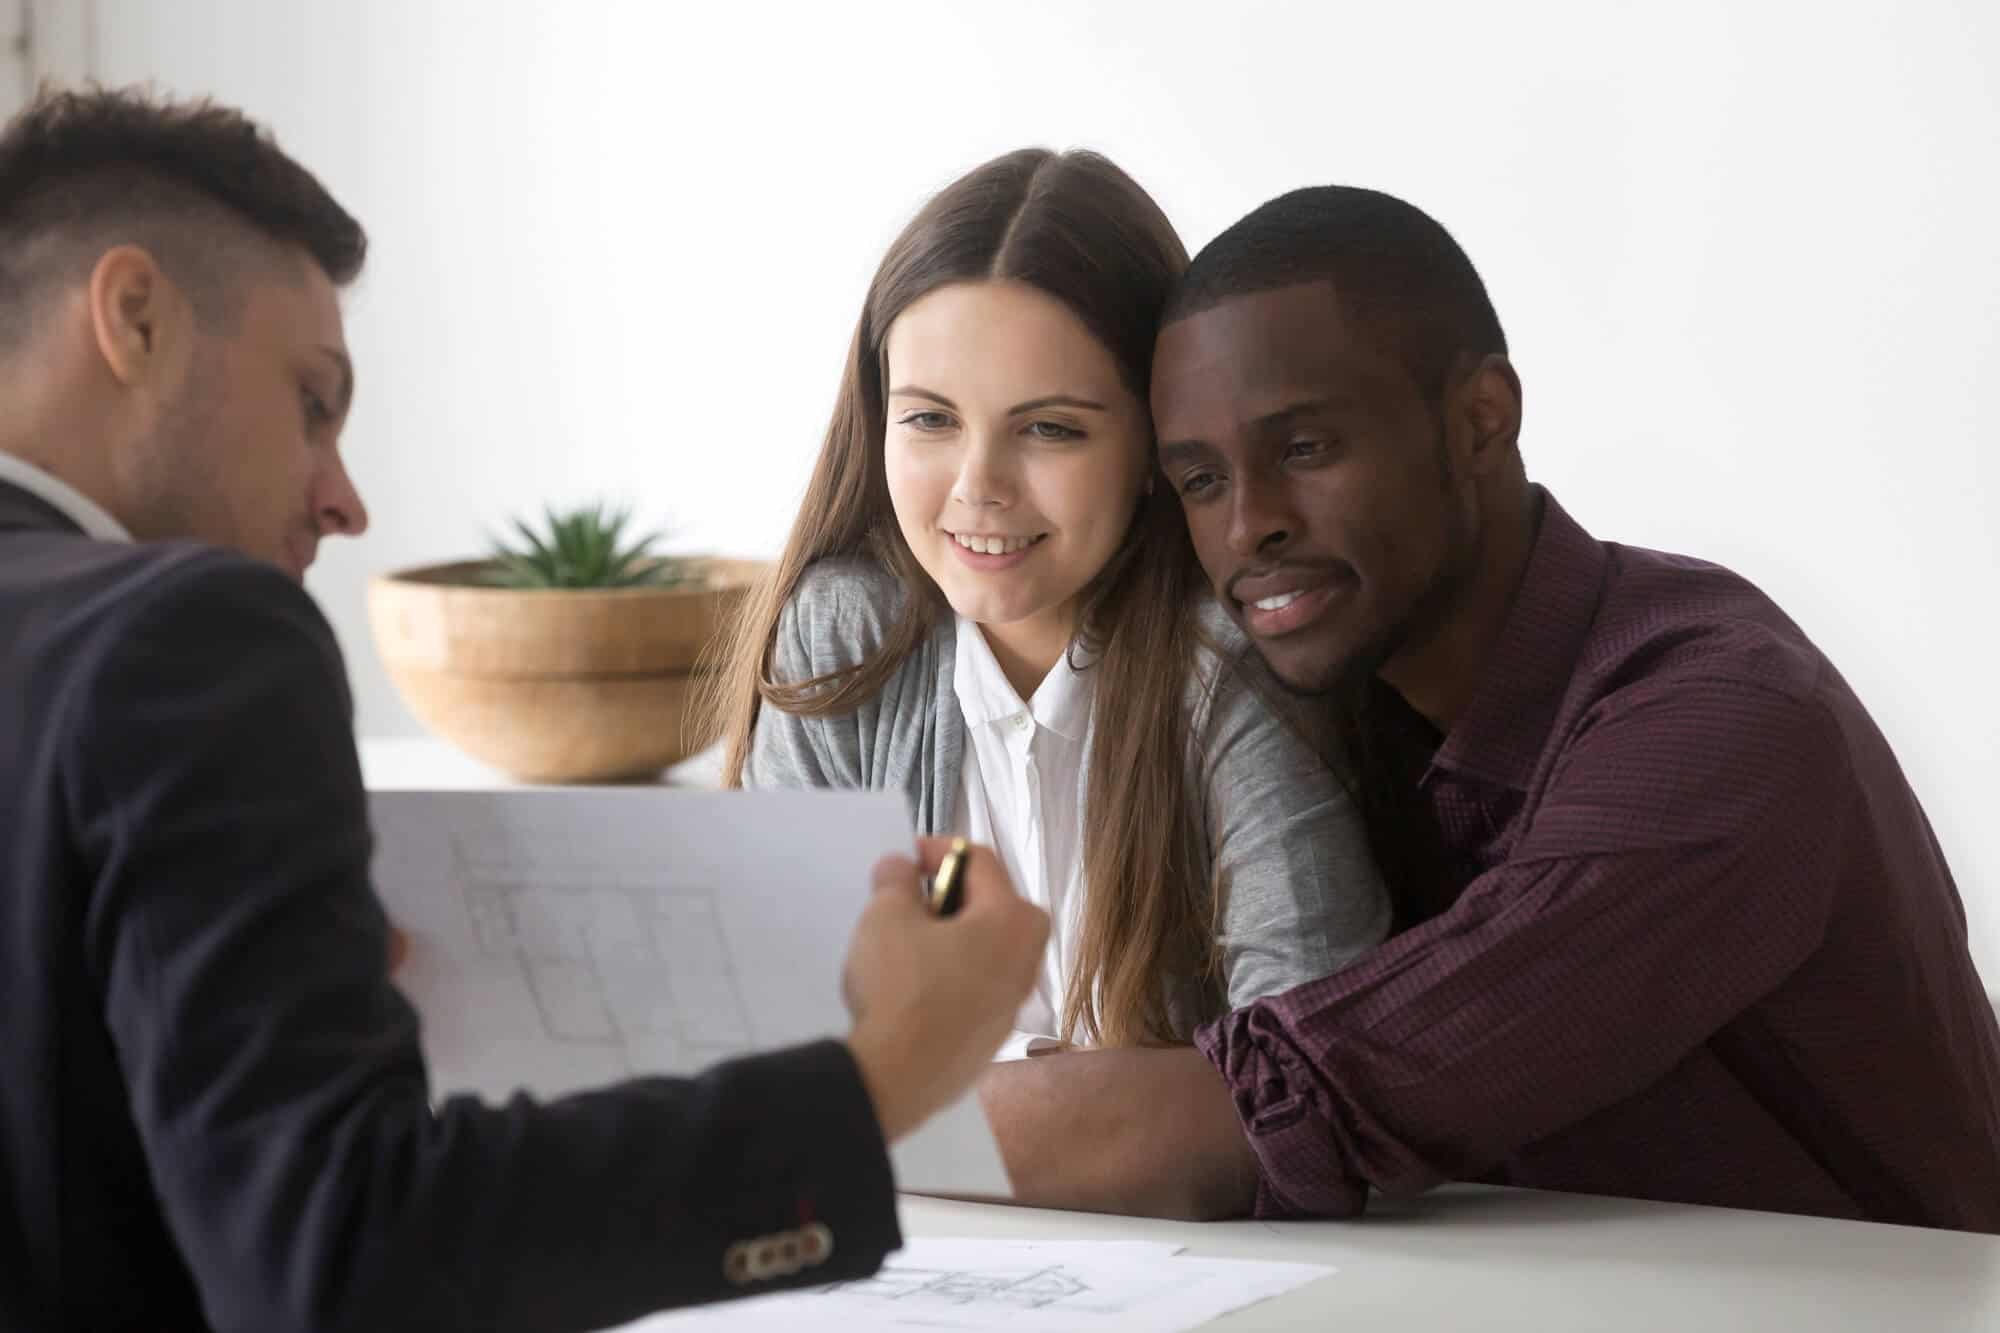 Male real estate agent or consultant showing house plan to happy millennial multiracial couple buying first home together, architect discussing apartment design with spouses or young family